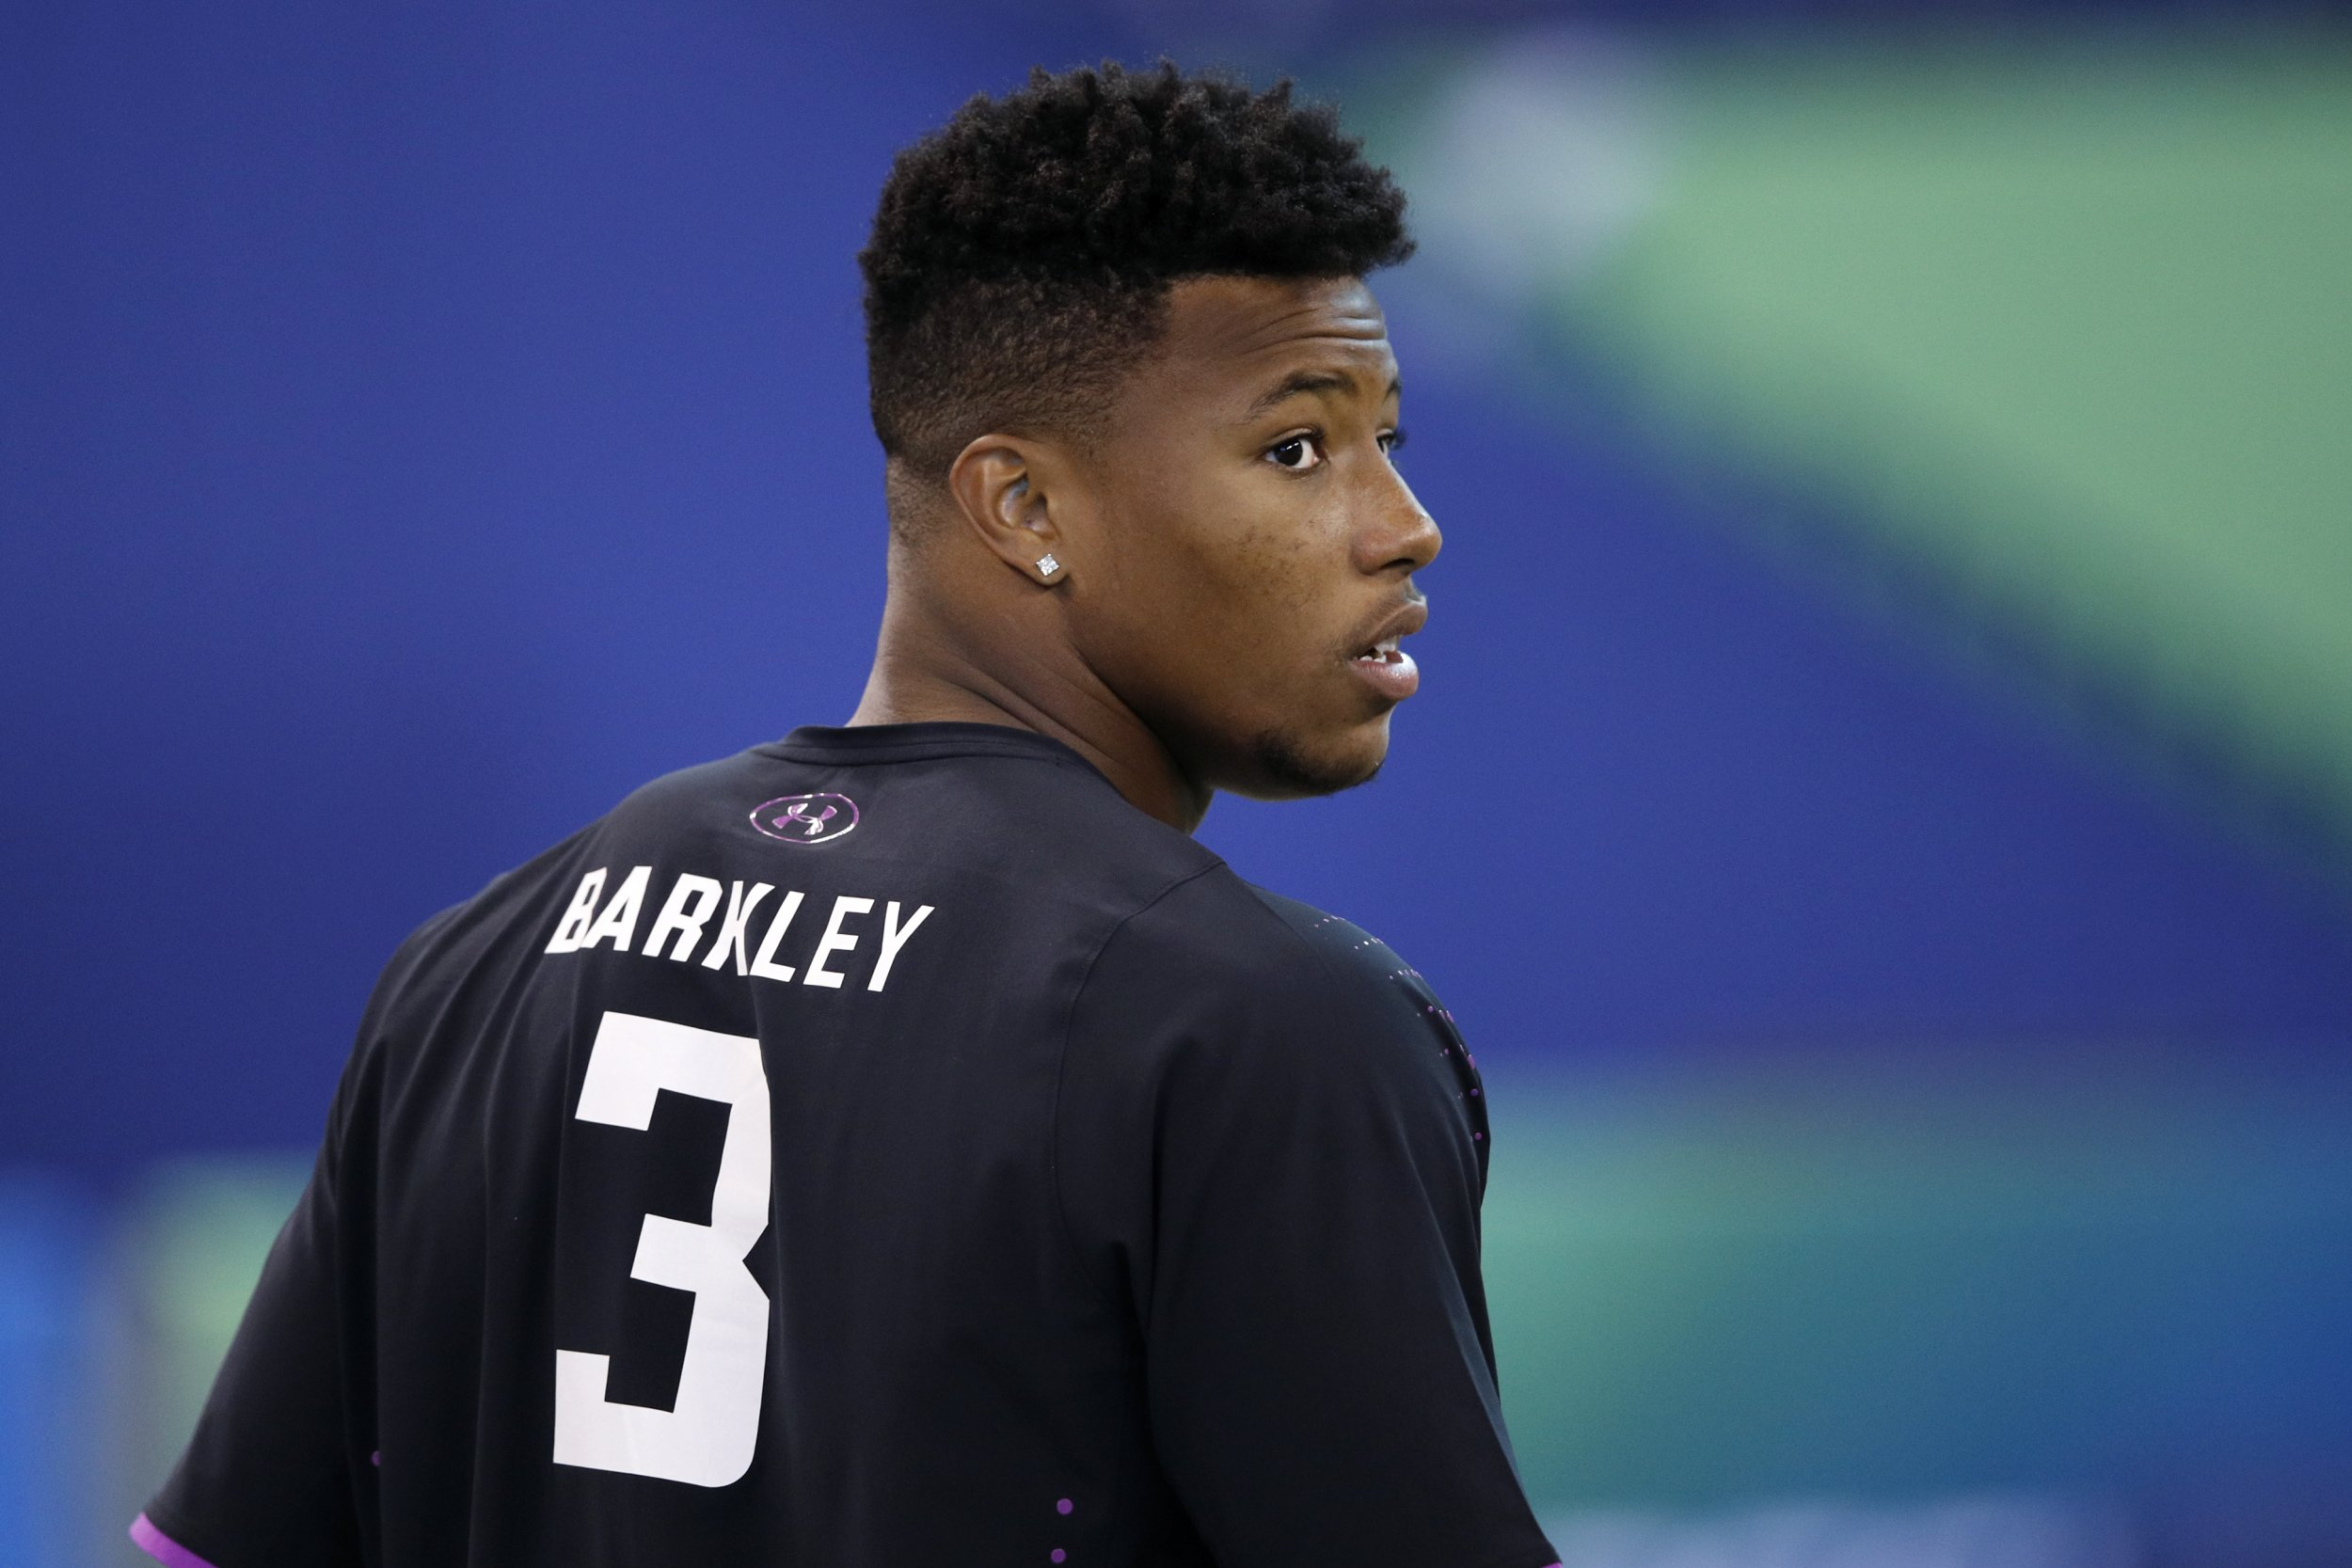 GettyImages-926386134 Penn State running back Saquon Barkley looks on  during the 2018 NFL Combine ... aa4b89e7b